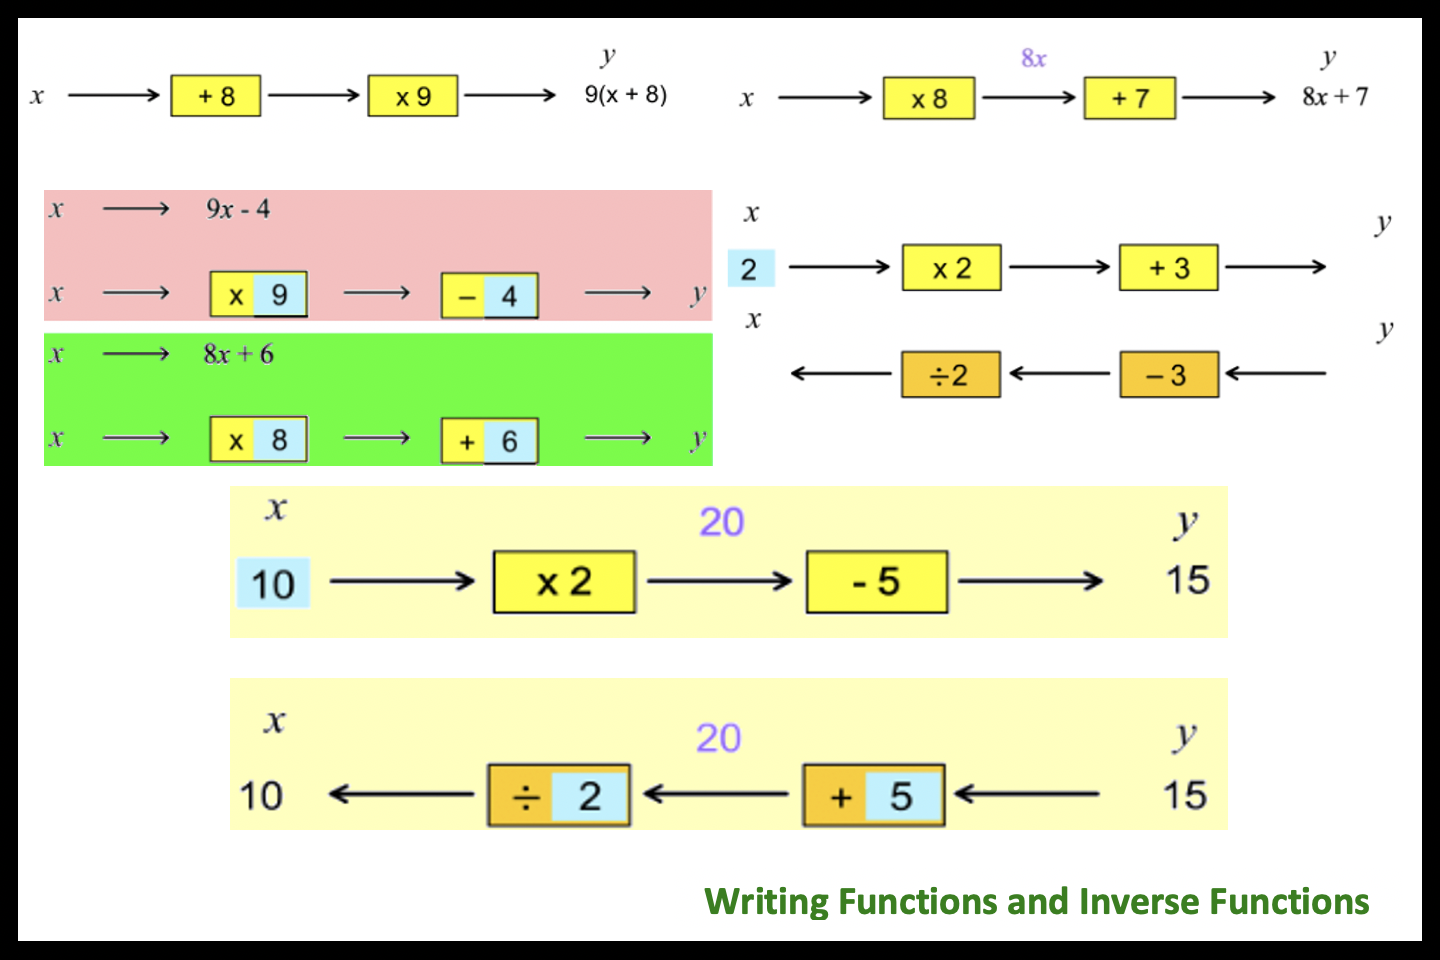 Writing Functions and Inverse Functions